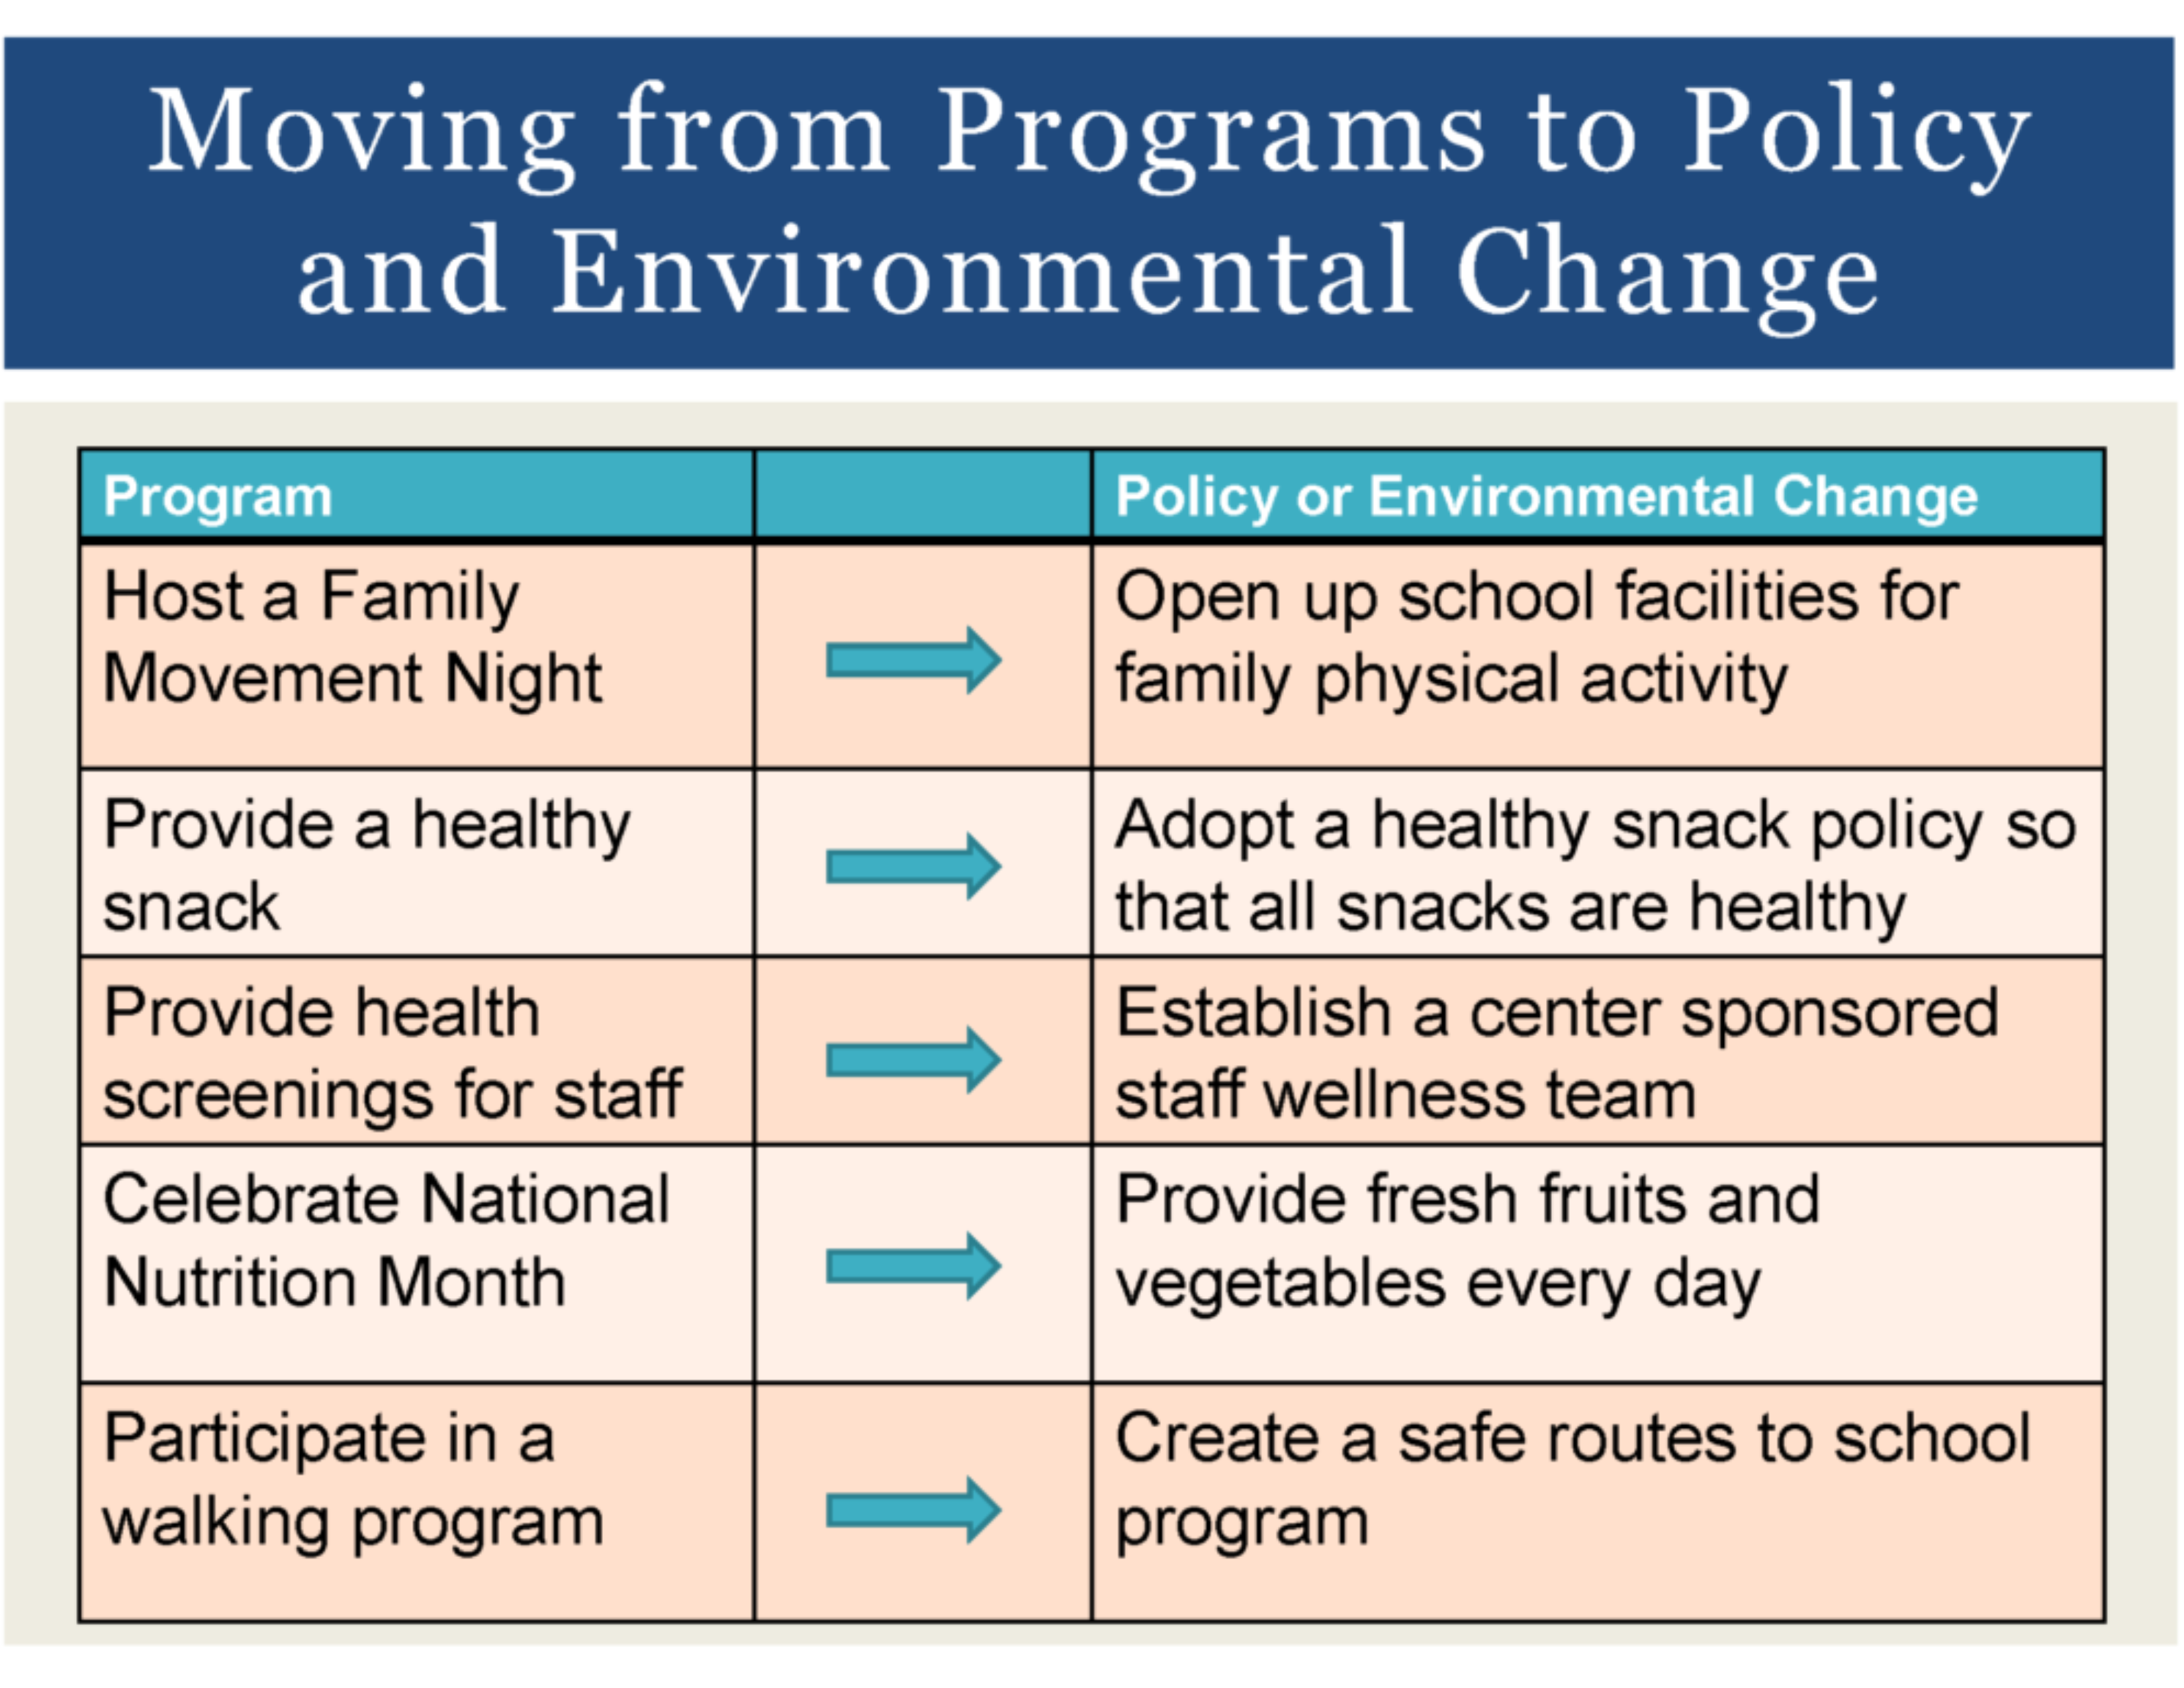 HealthMPowers Program, Policy, Environmental Change Training 8